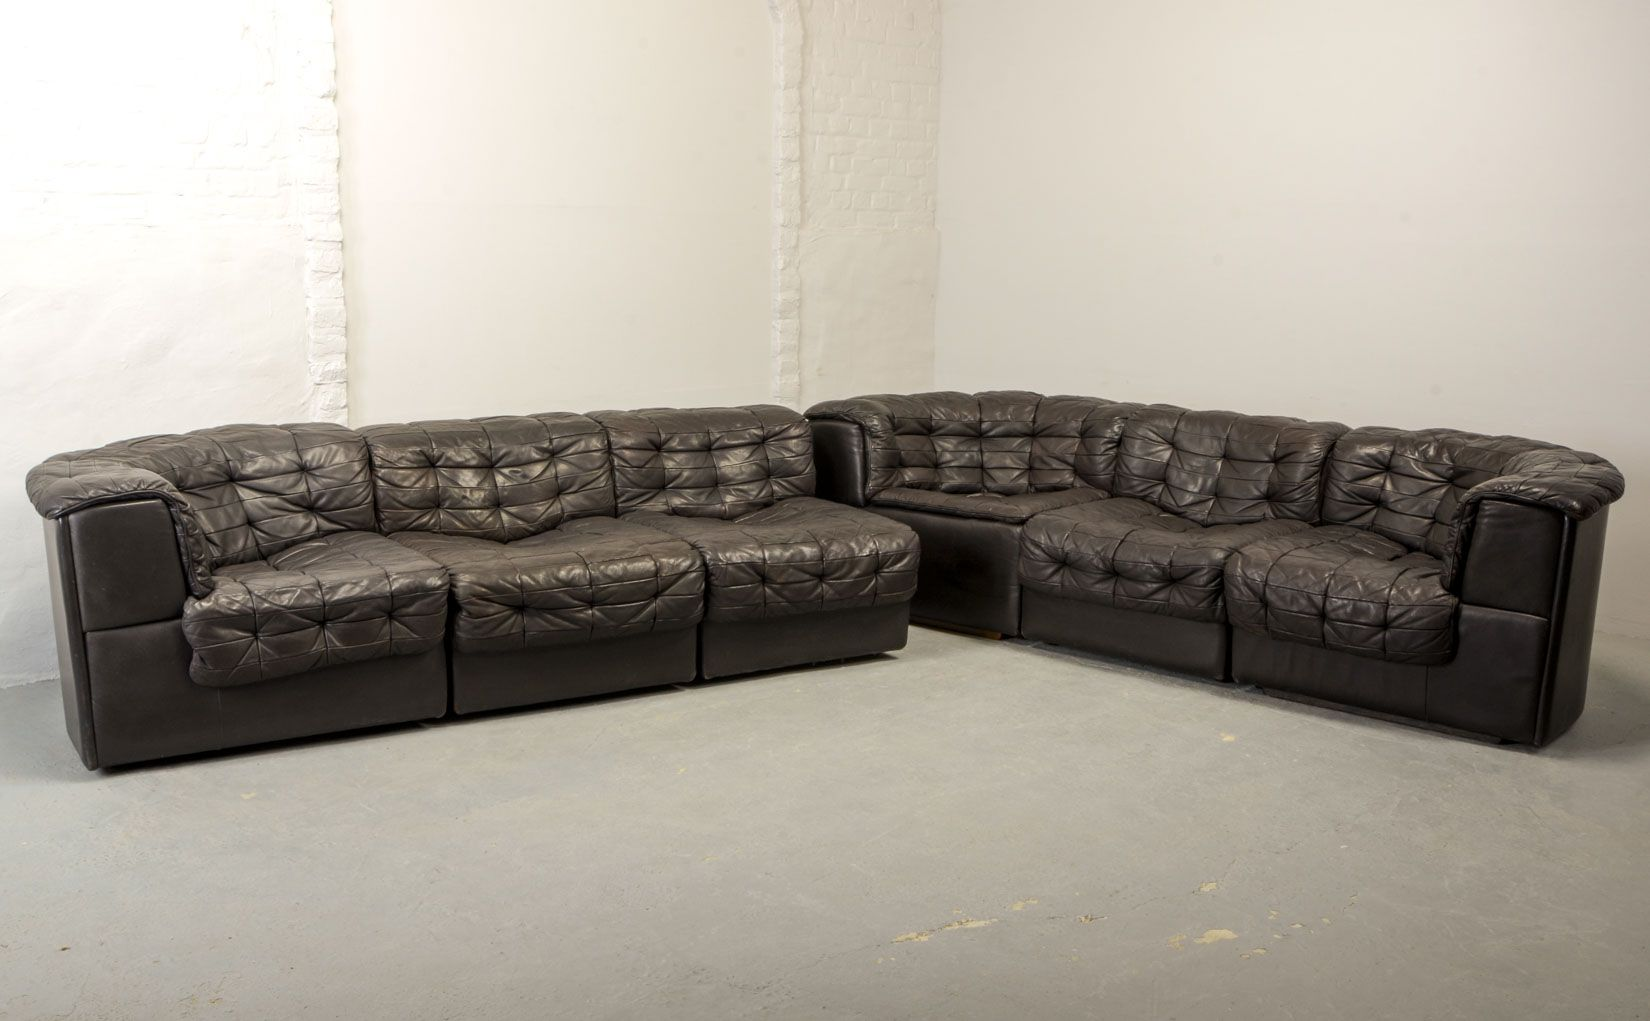 - Mid-Century DS11 Modular Patched Leather Sofa From De Sede, 1970s